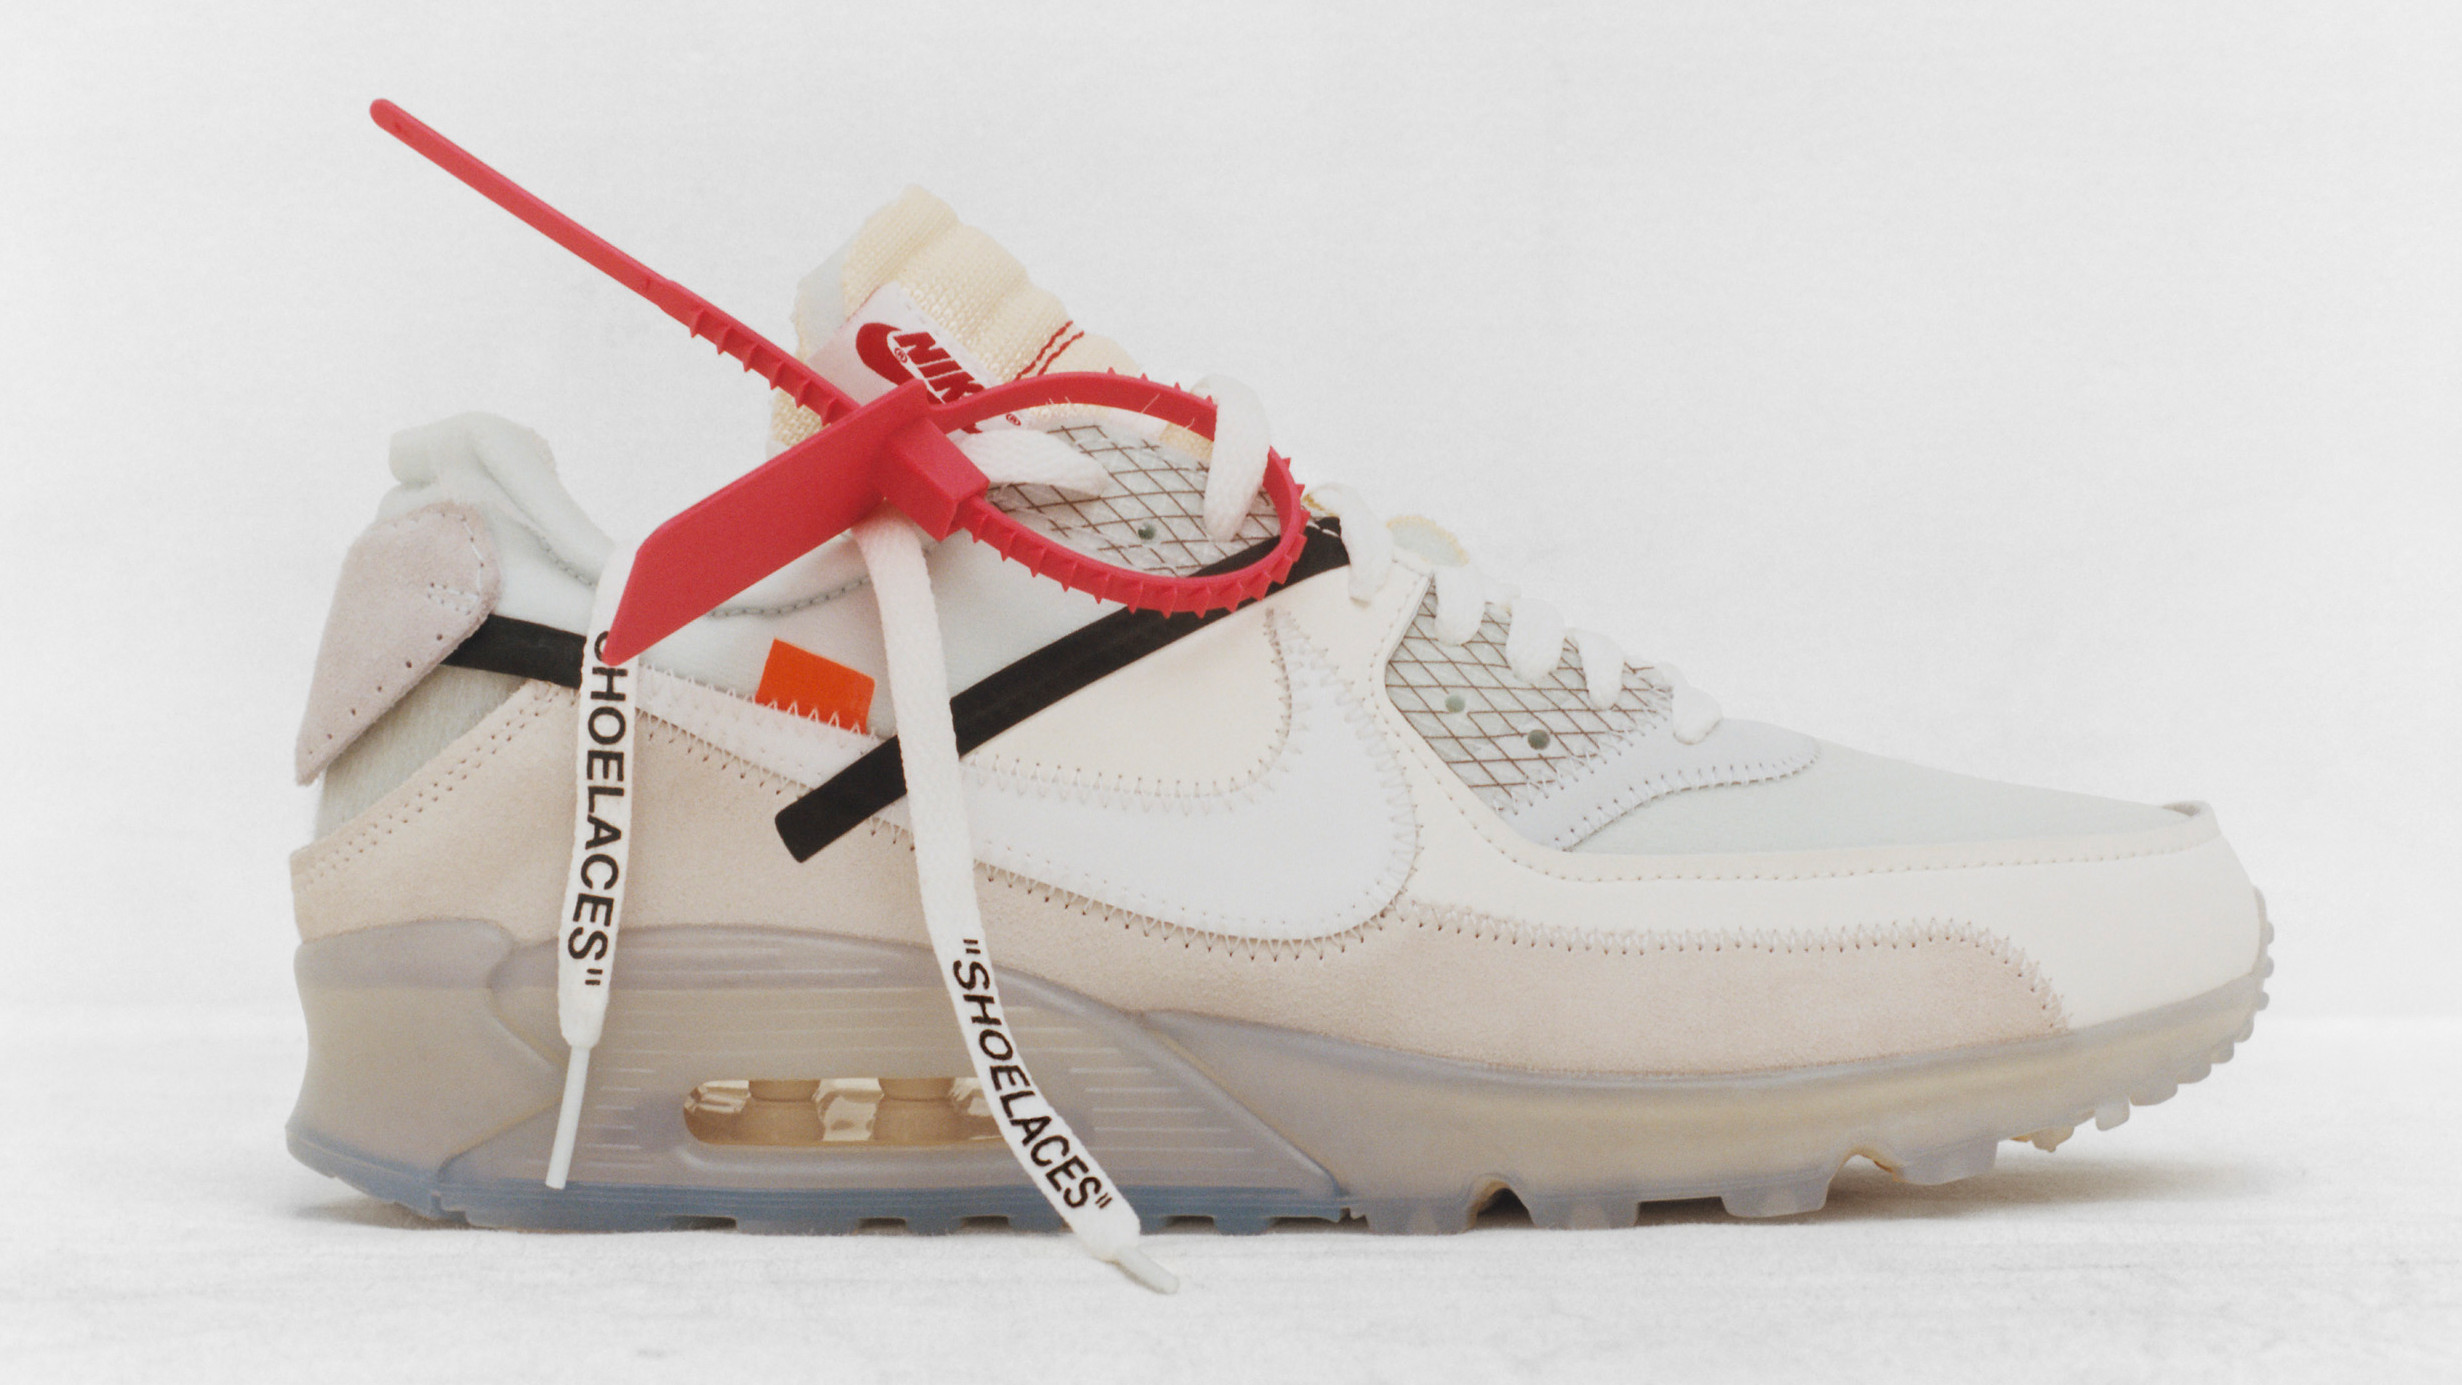 online store a4ca2 6a1d6 Off-White x Nike Air Max 90  University Red Team Orange  AA7293-600 Release  Date   Sole Collector